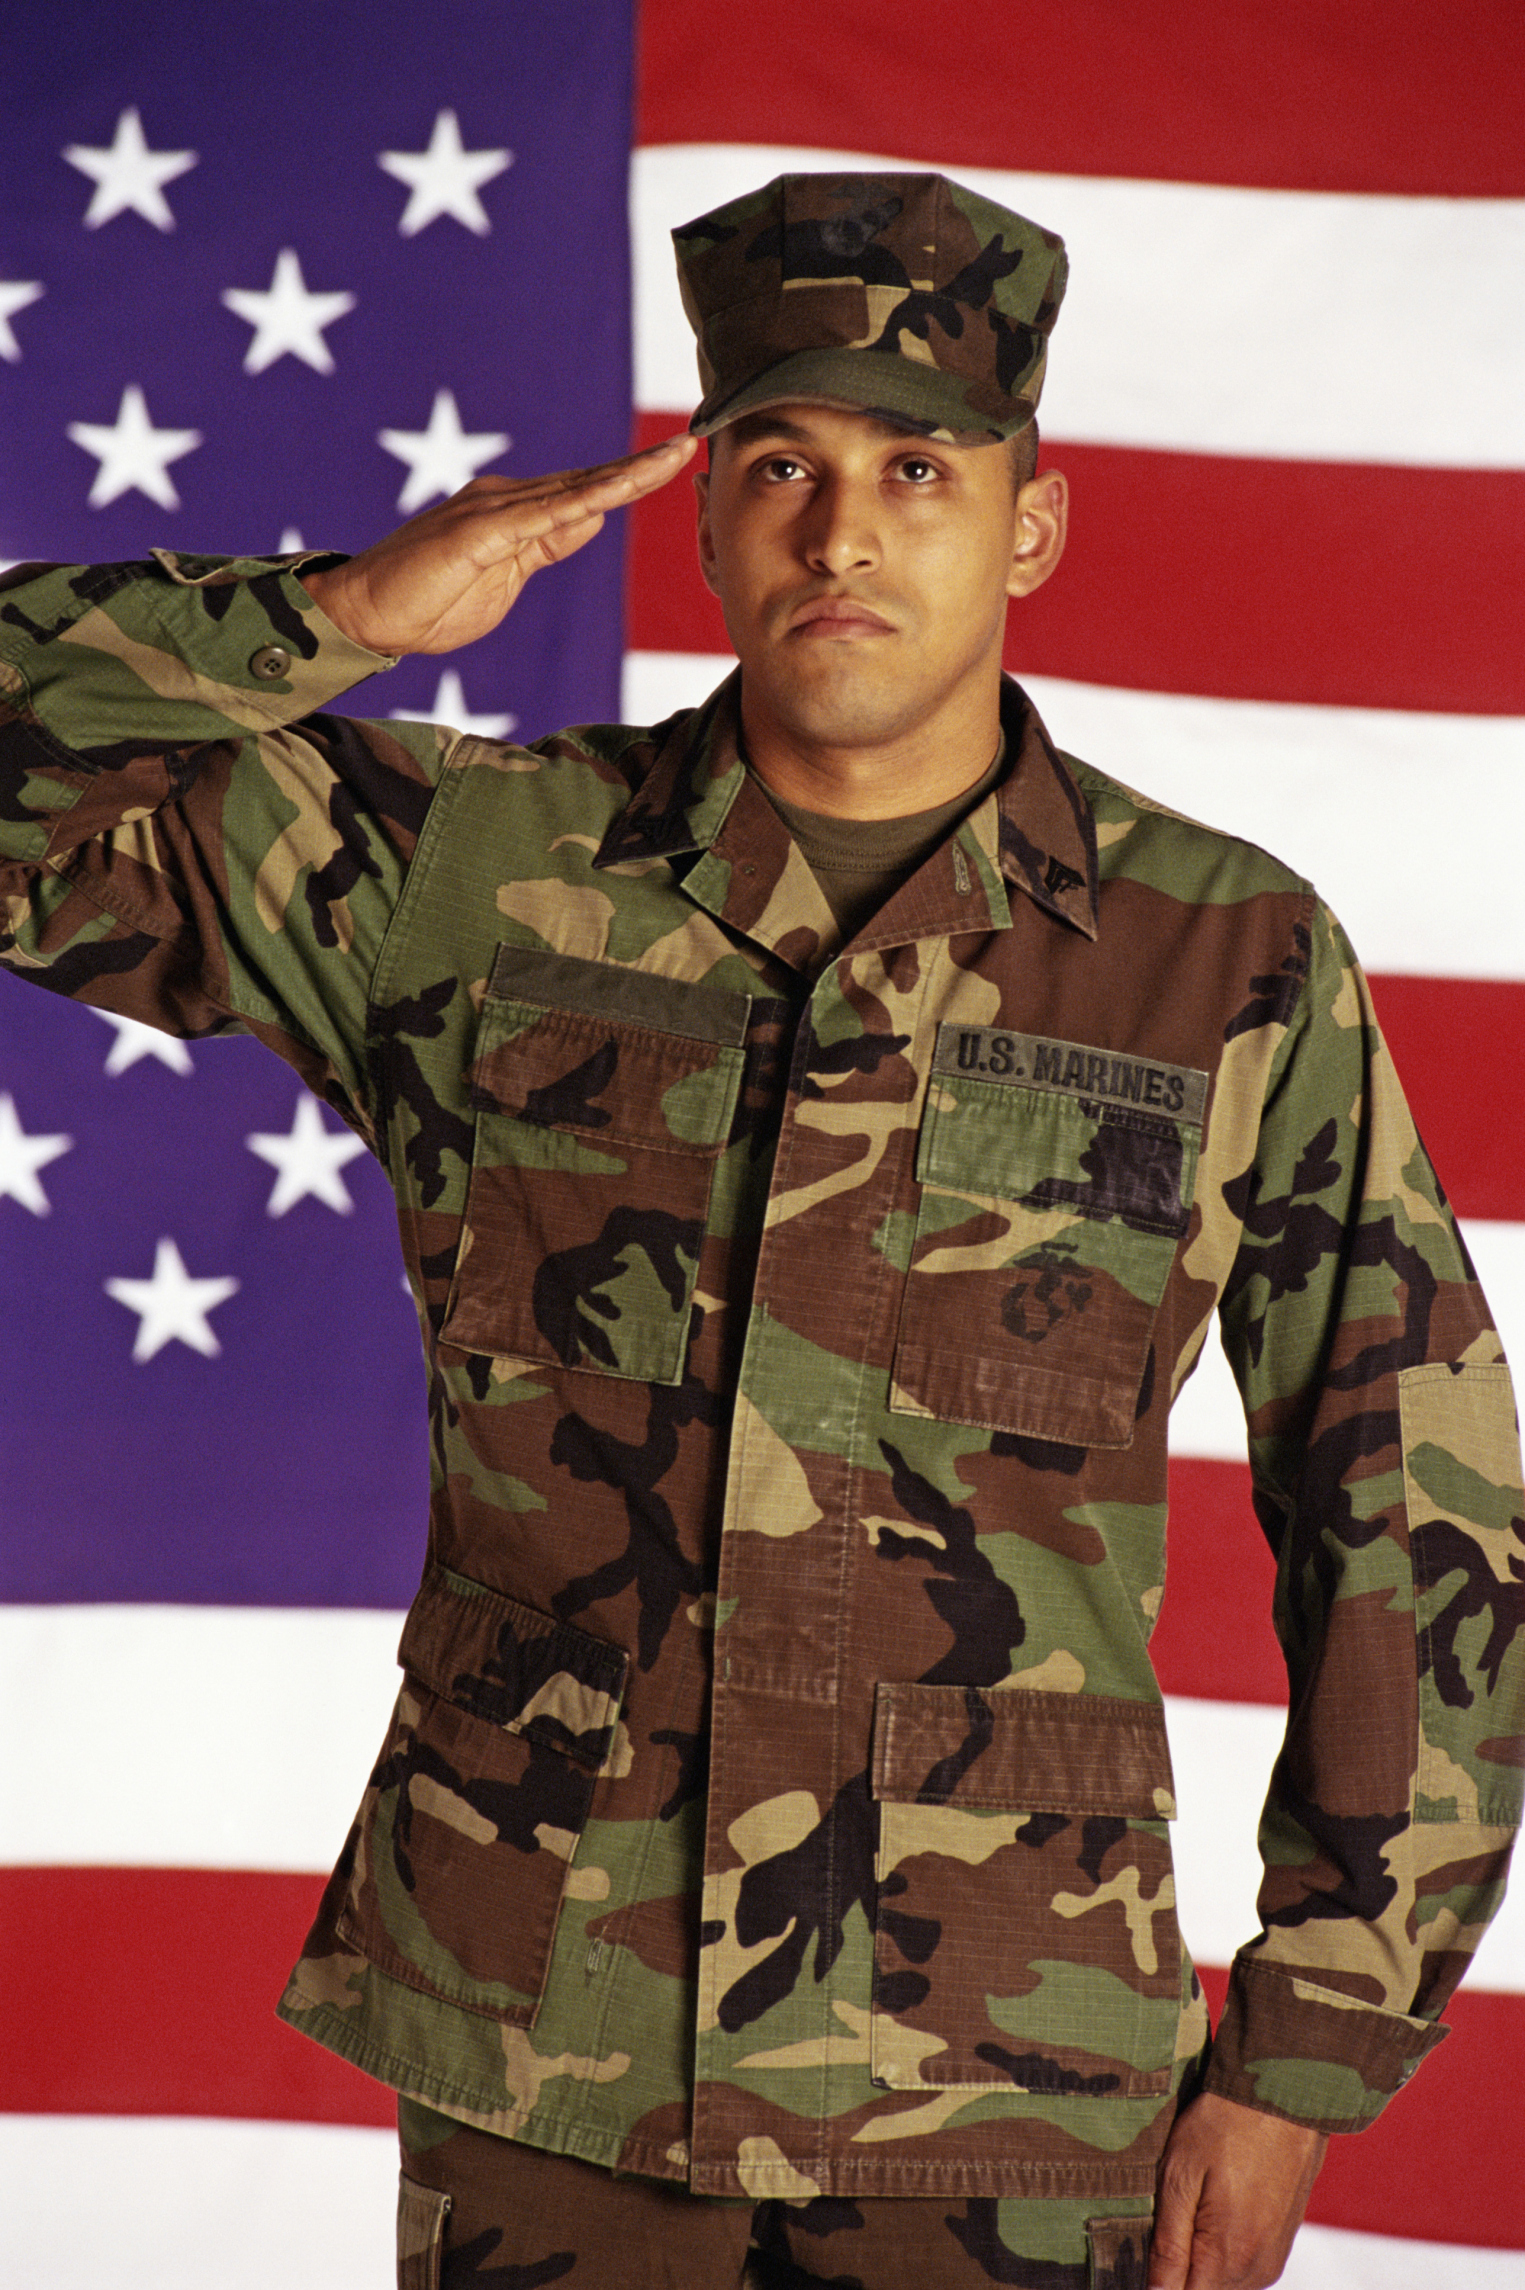 Does Army Tuition Assistance Pay For A Masters Degree. Swimming Pool Signs Of Stroke. Mad Signs. Rode Signs Of Stroke. Fibrinolytic Signs. H1n1 Signs. Thriving Signs. Library Signs. Deck Signs Of Stroke